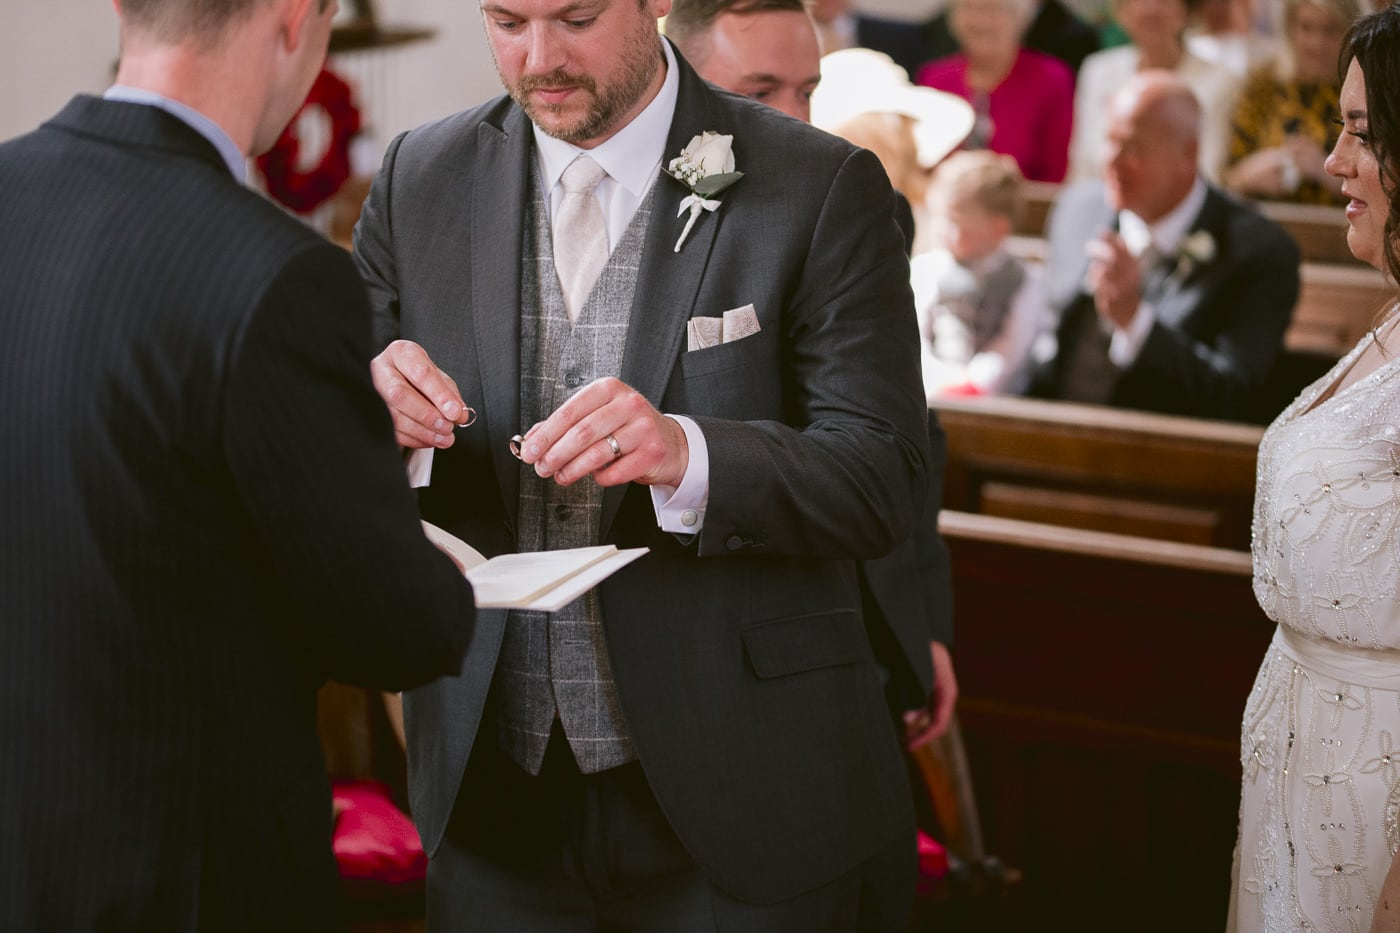 Groom Placing Wedding Rings with Minister Portrait Shooting